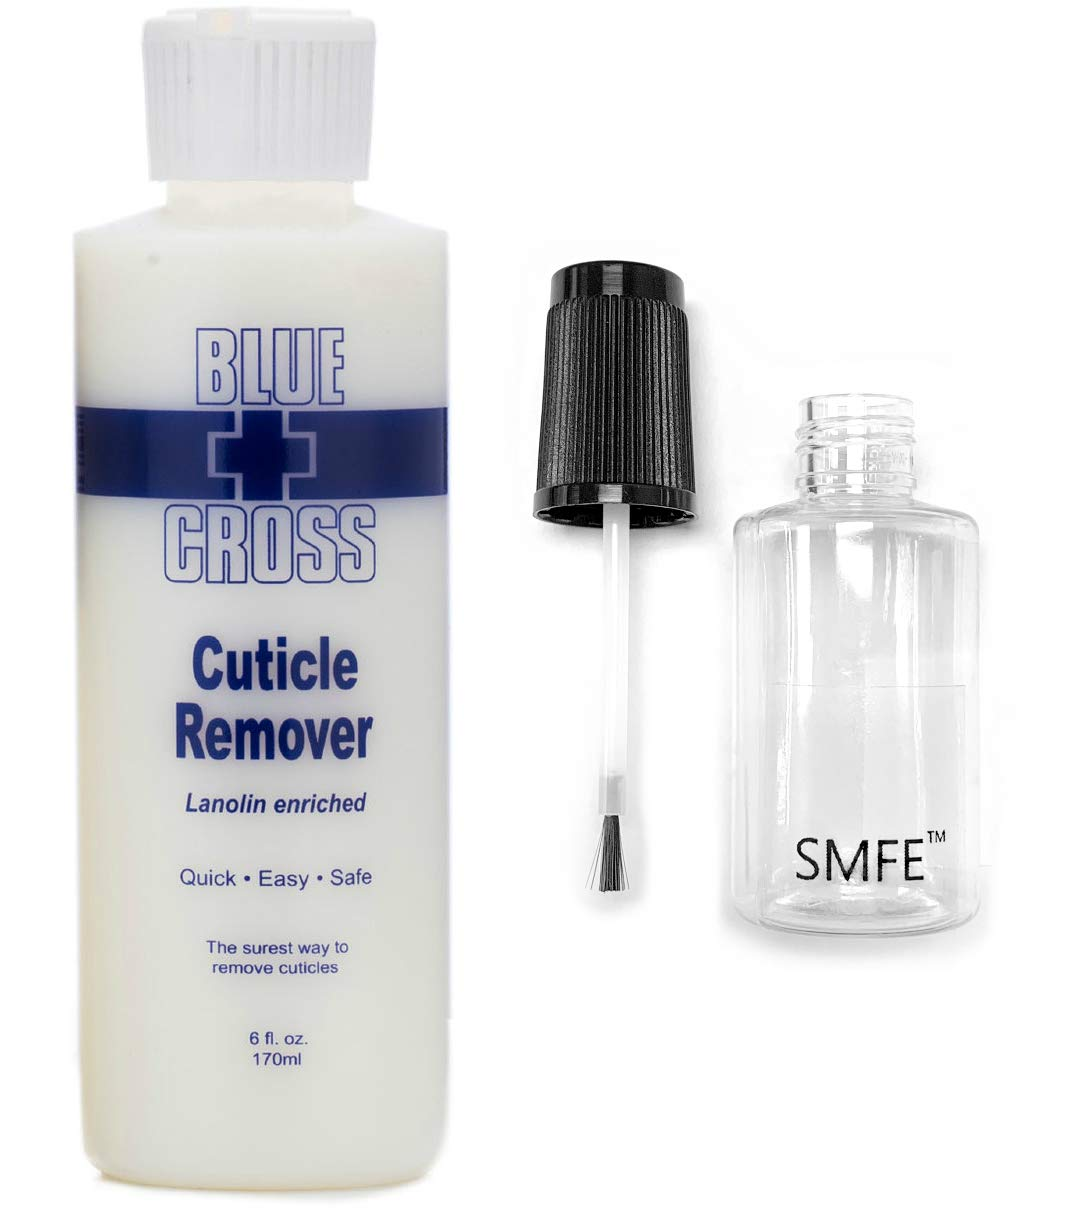 Blue Cross Cuticle Remover 6 Ounce Bundle with SMFE Empty Applicator Bottle